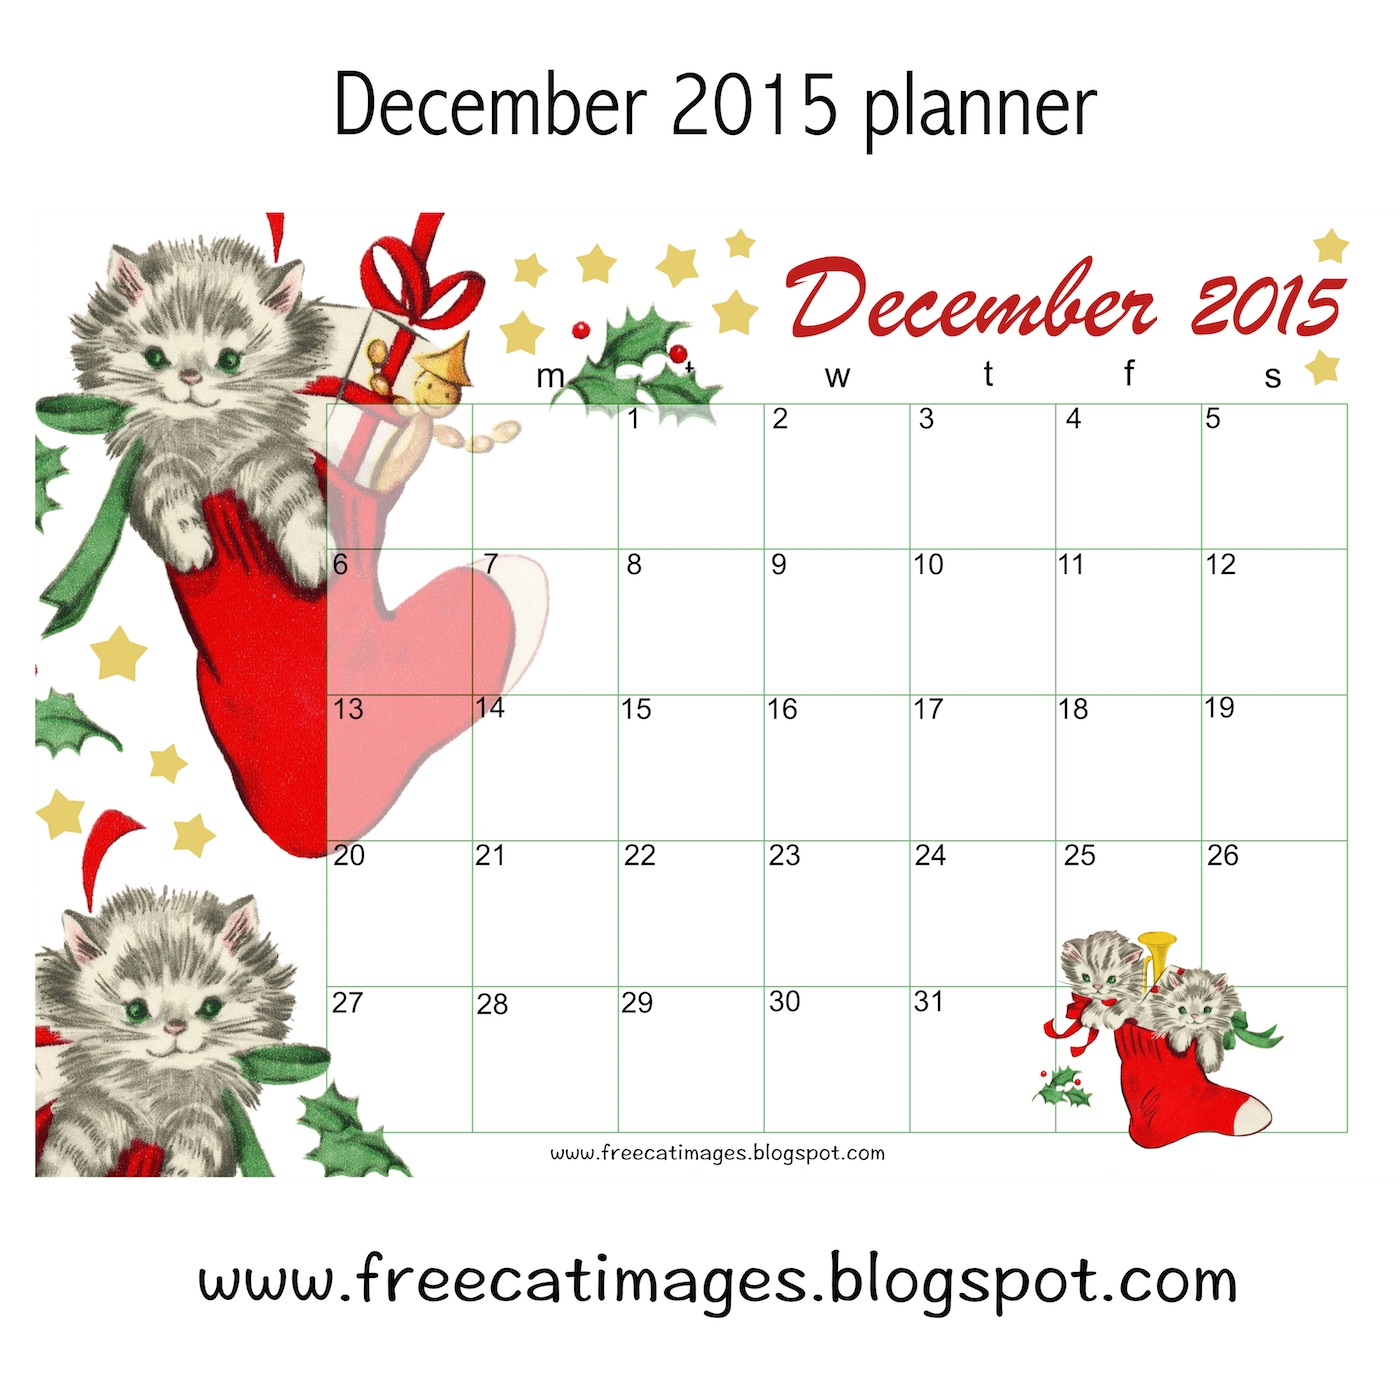 free cat images  free printable 2015 december calendar